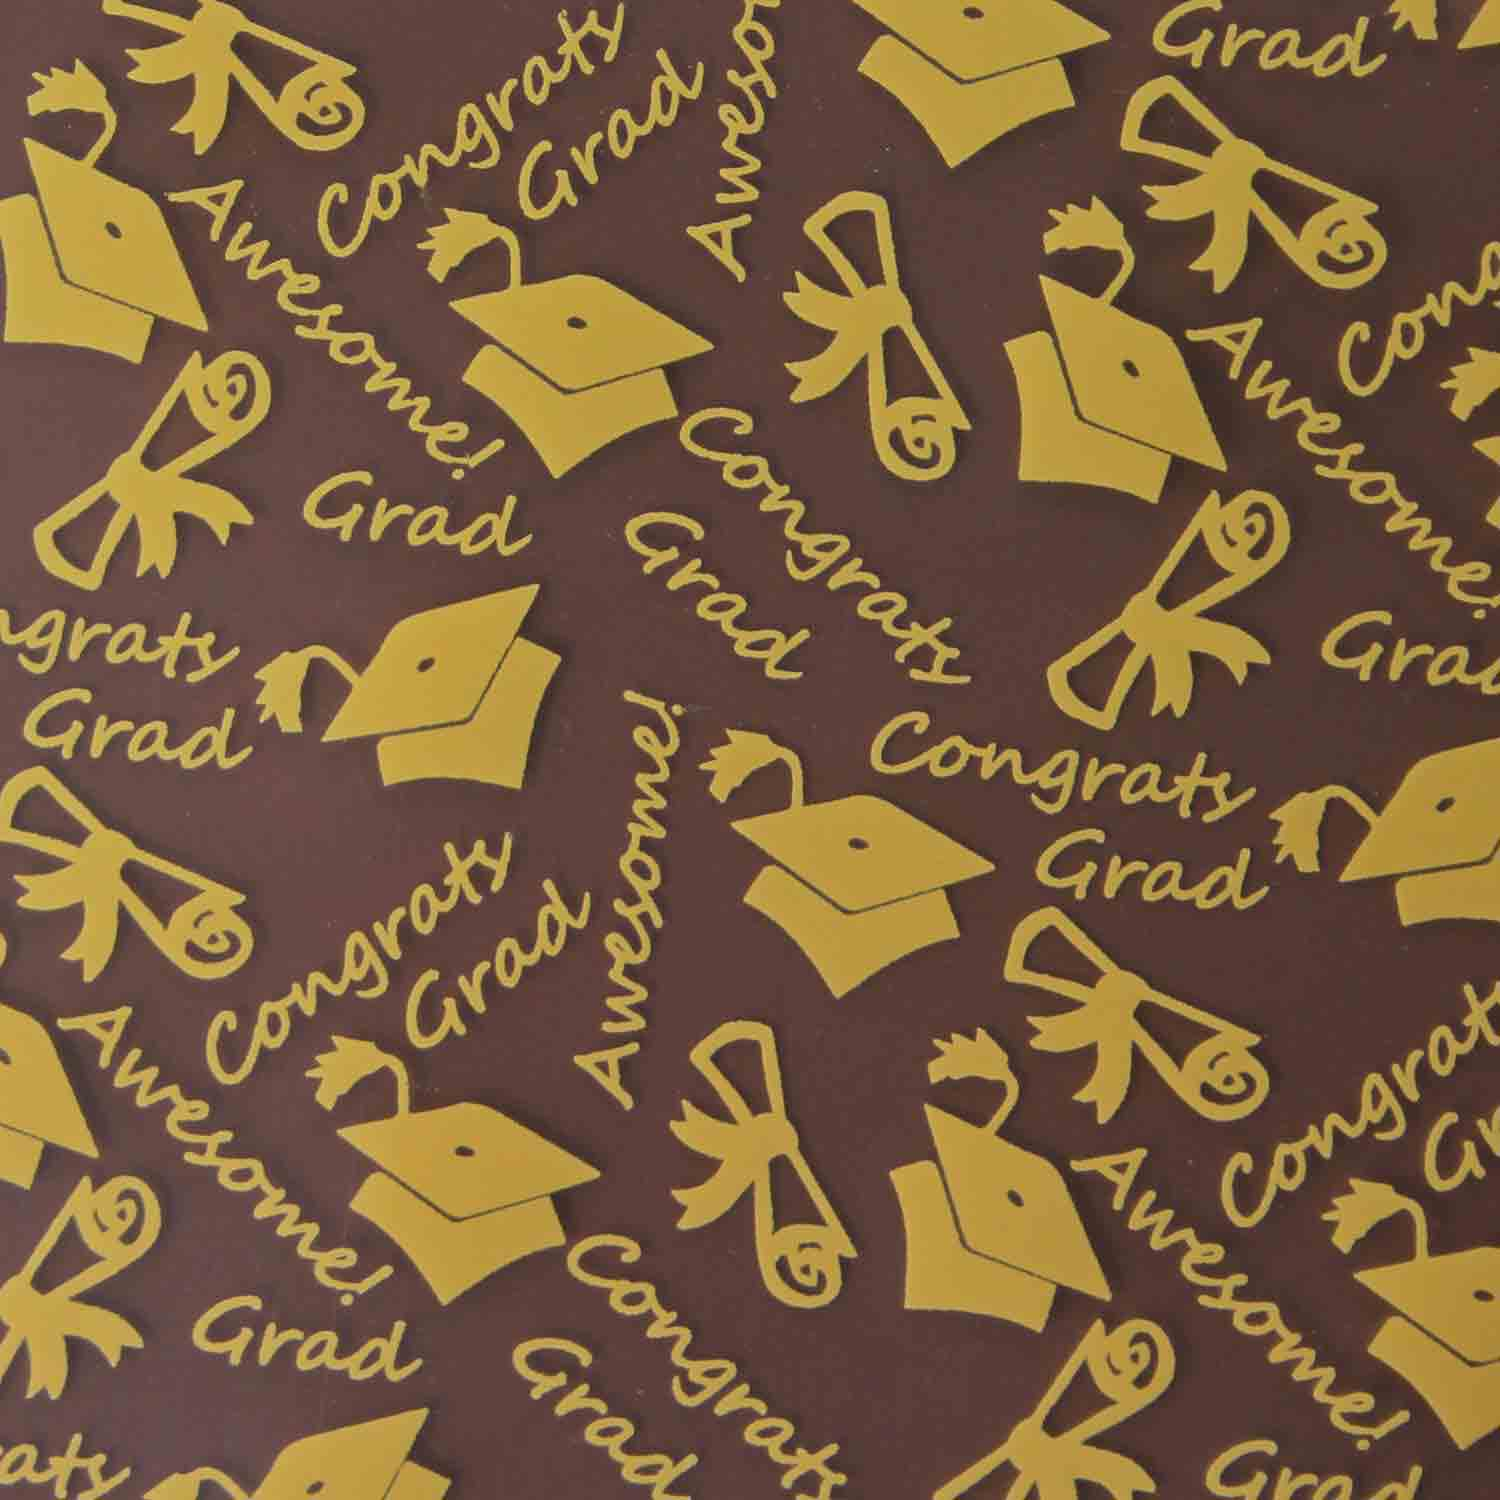 Chocolate Transfer Sheet- Congratulations Graduate